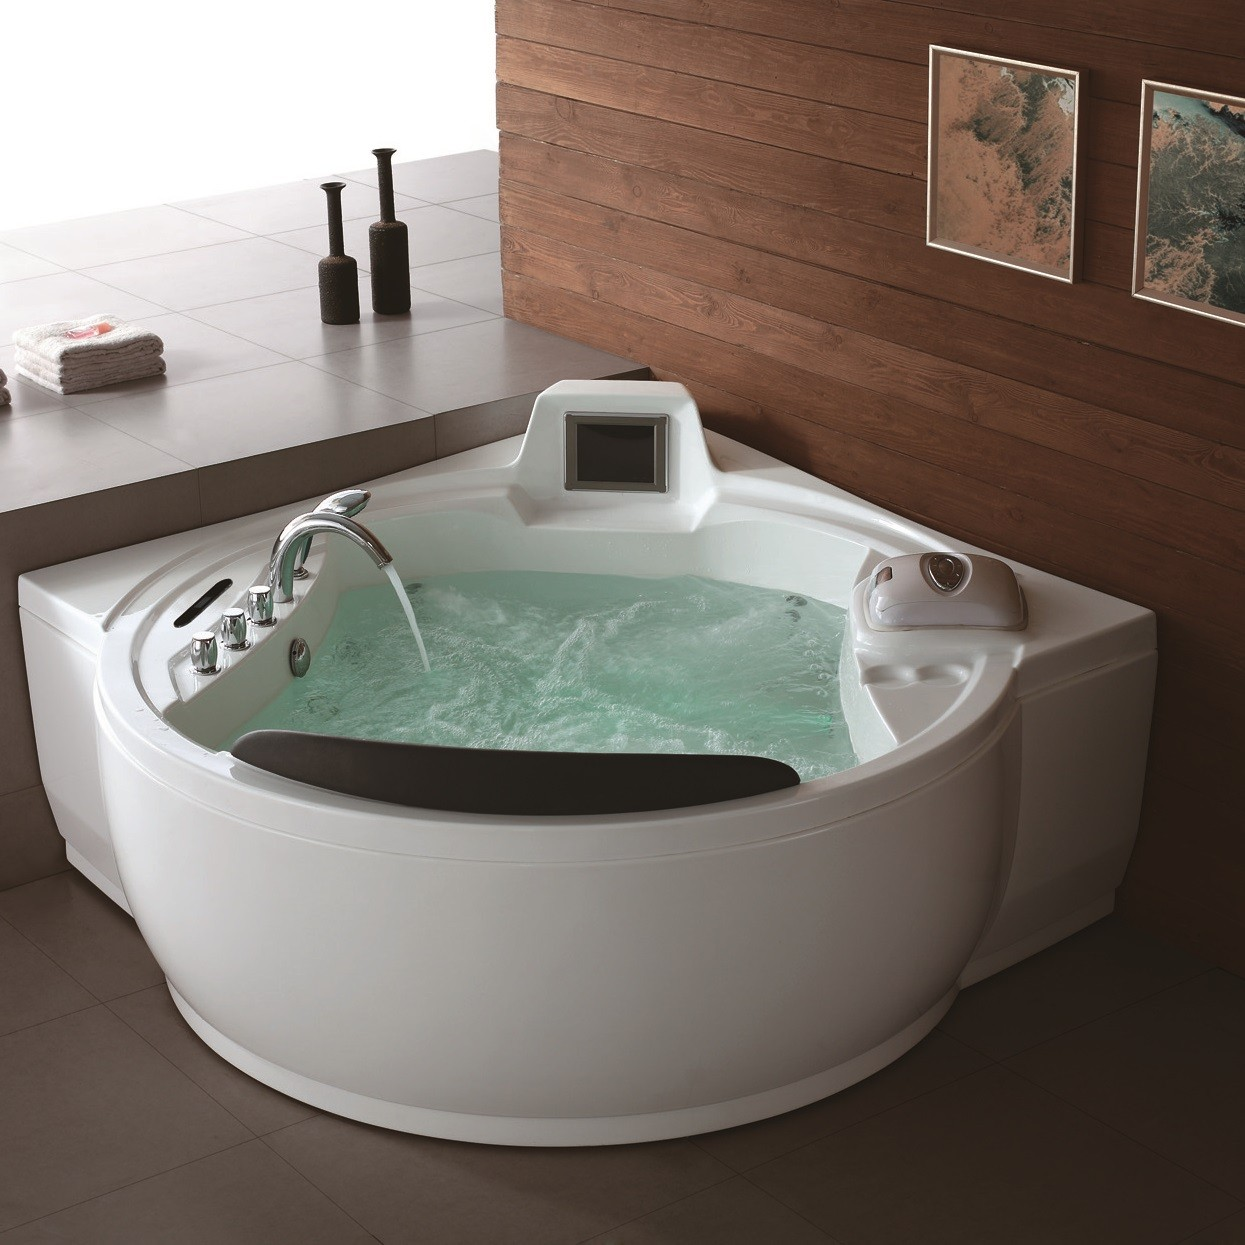 Home freeport luxury whirlpool tub